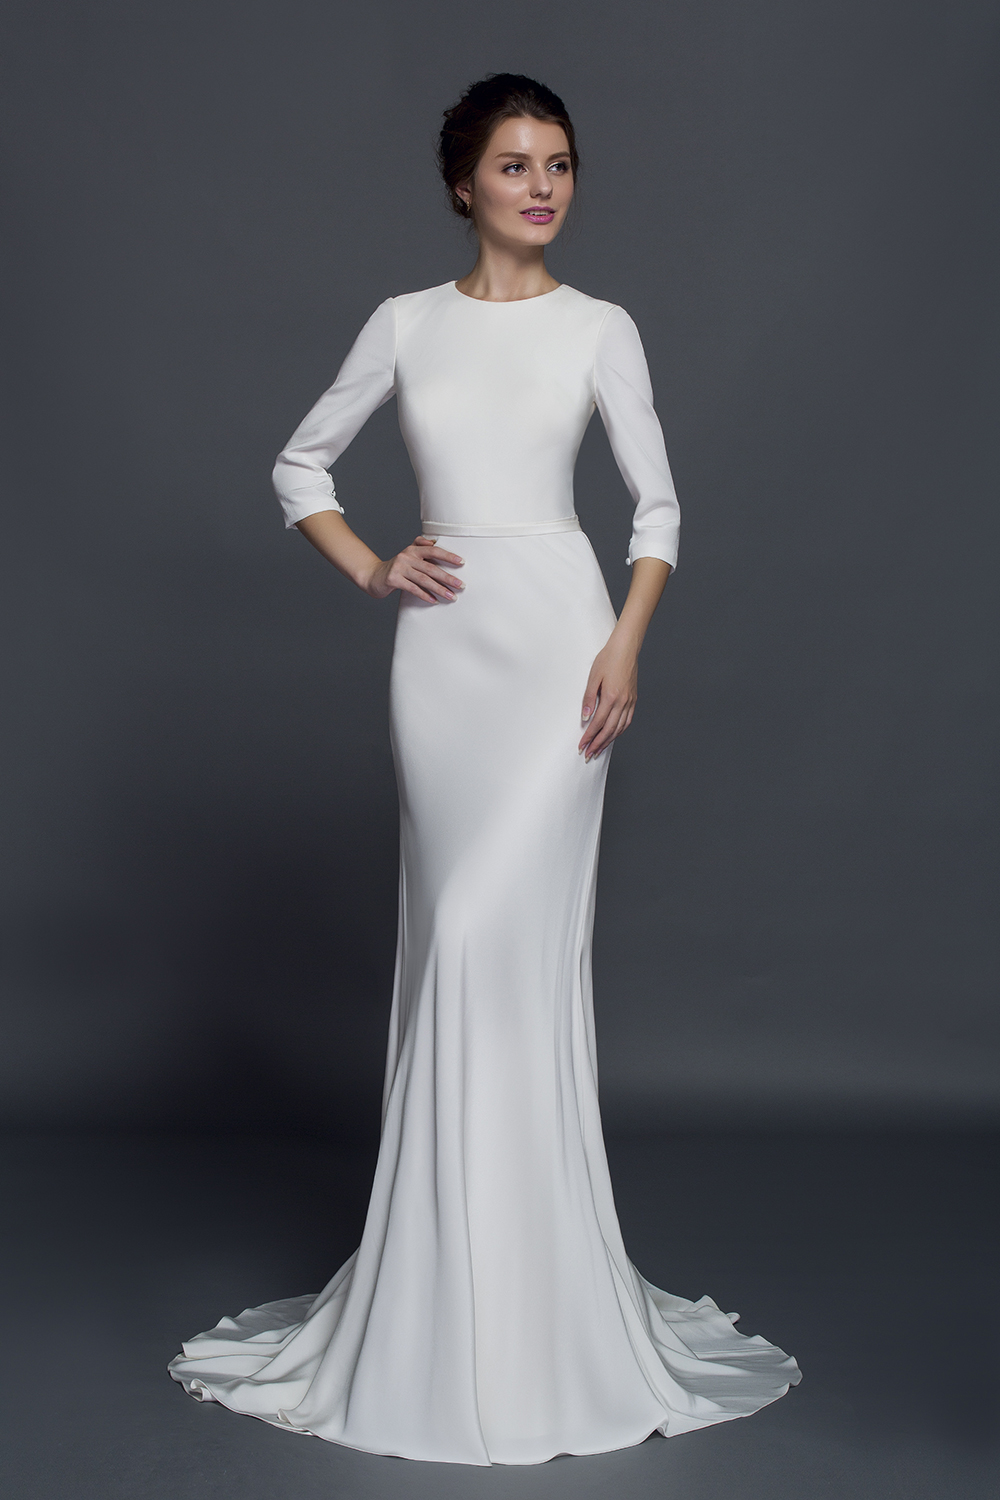 plus size silk crepe gown 3/4 sleeves & ribbon belt wedding dress from  curvy brides